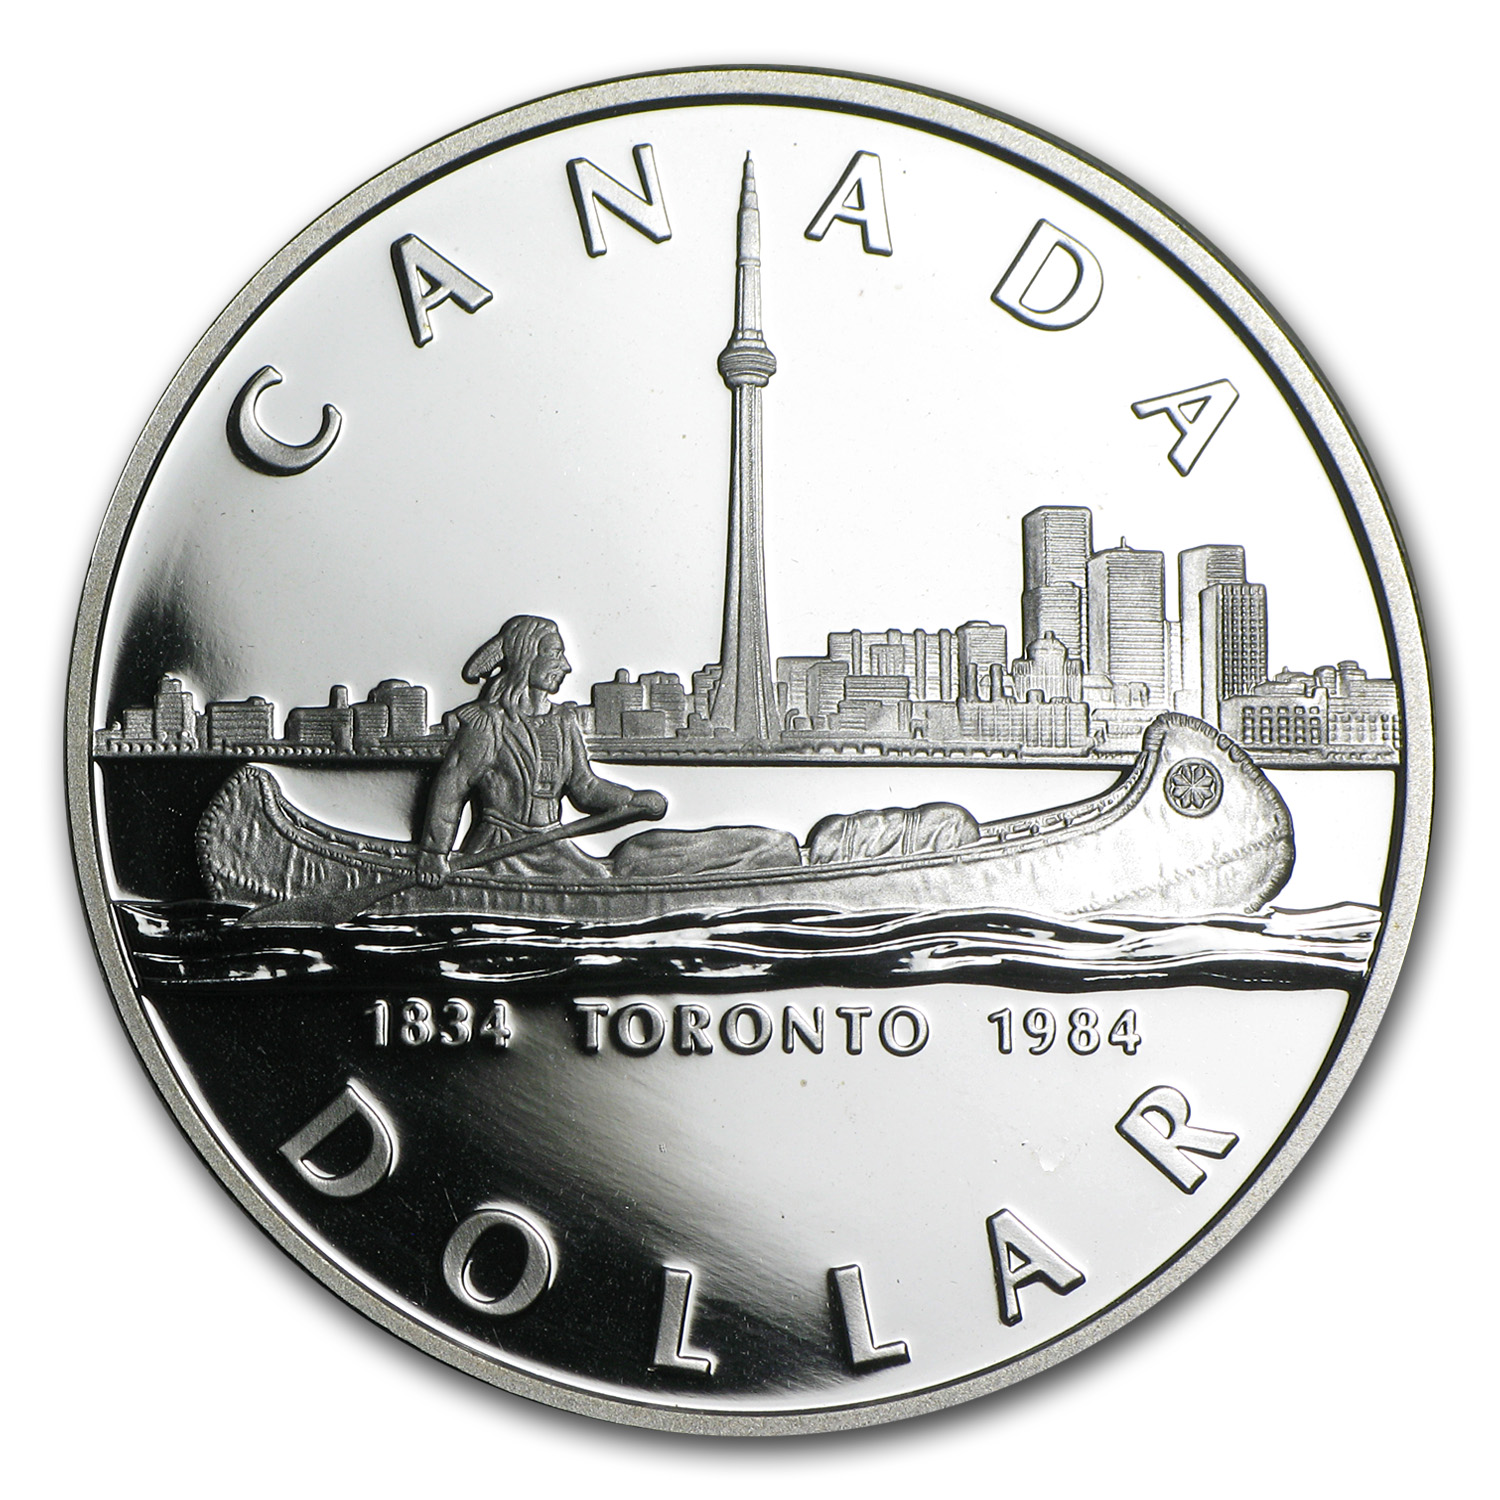 1984 Silver Canadian Proof Dollar - 150th Anniv. of Toronto